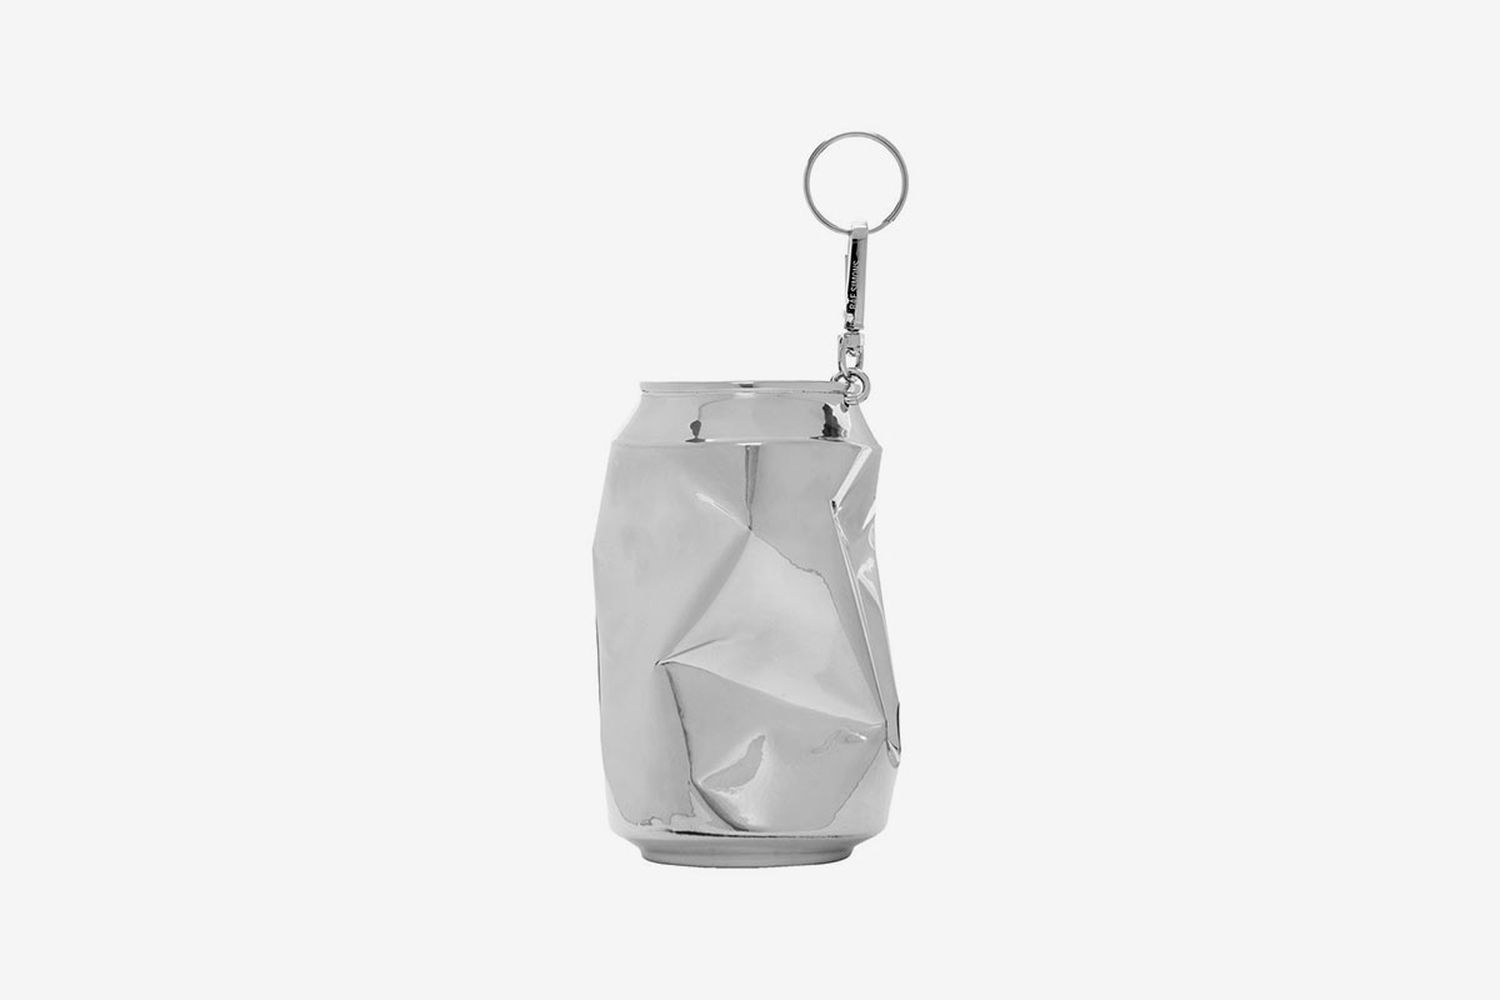 Half Crushed Can Keychain